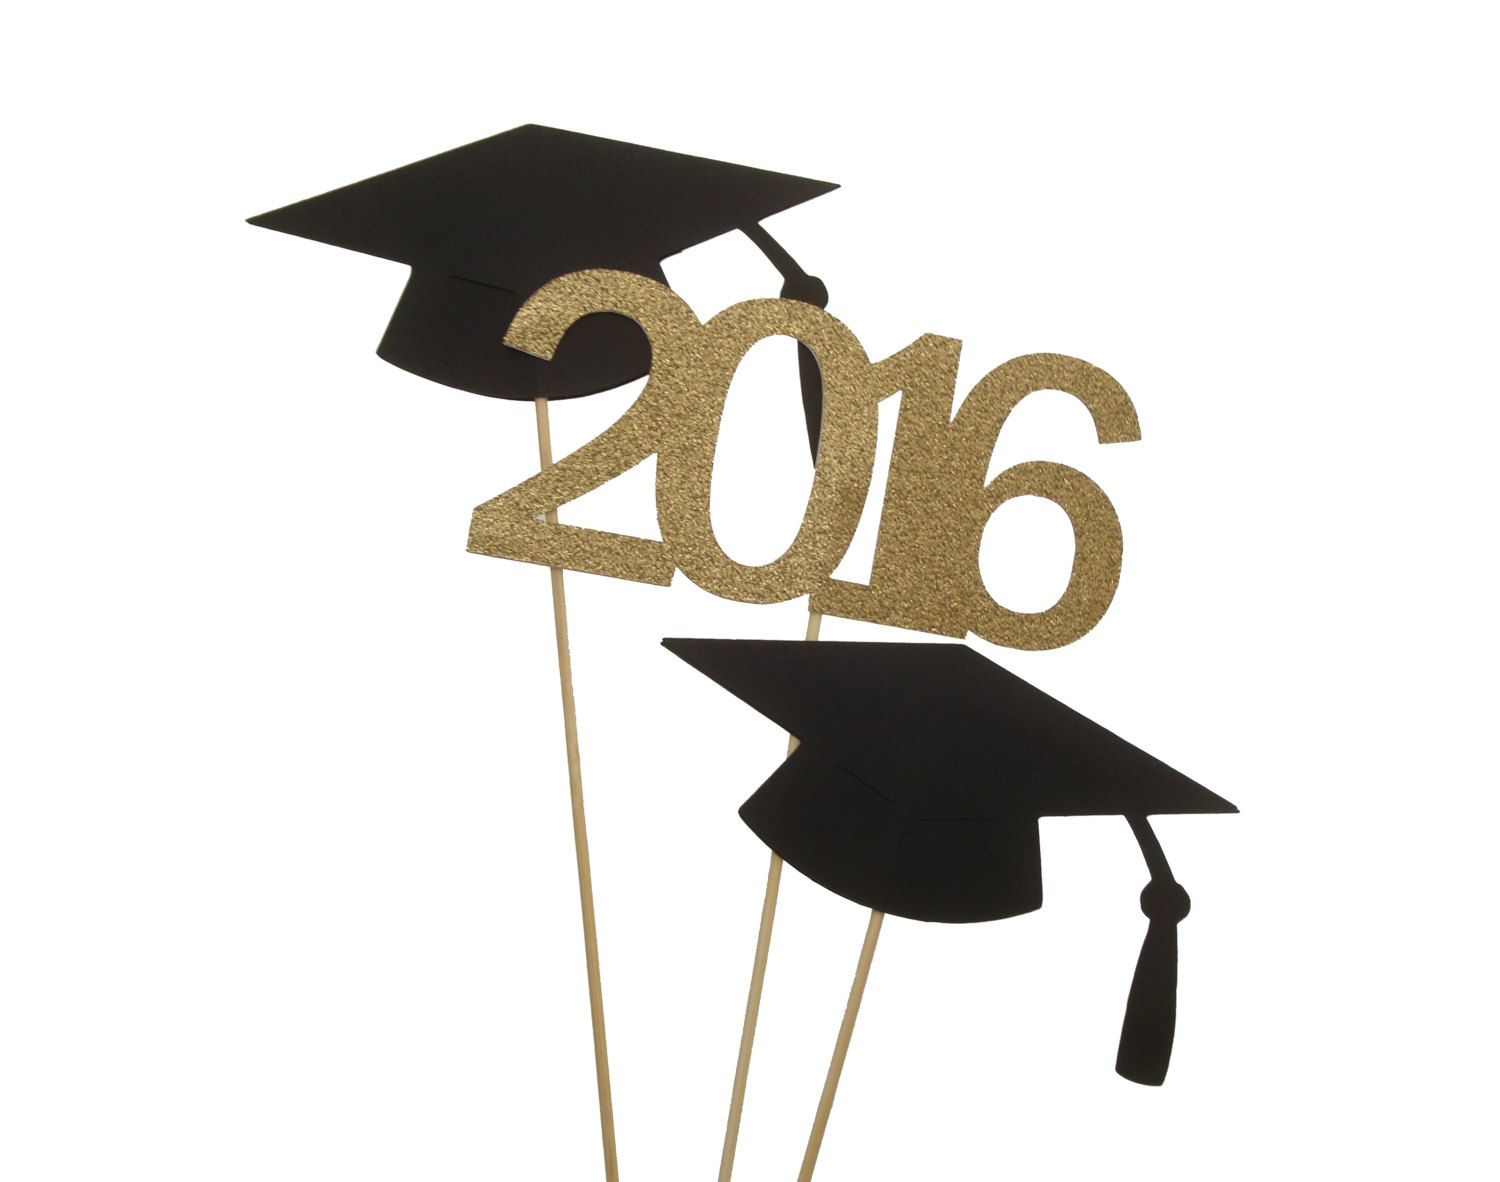 Graduation Clip Art 2016 (97+ images in Collection) Page 1.